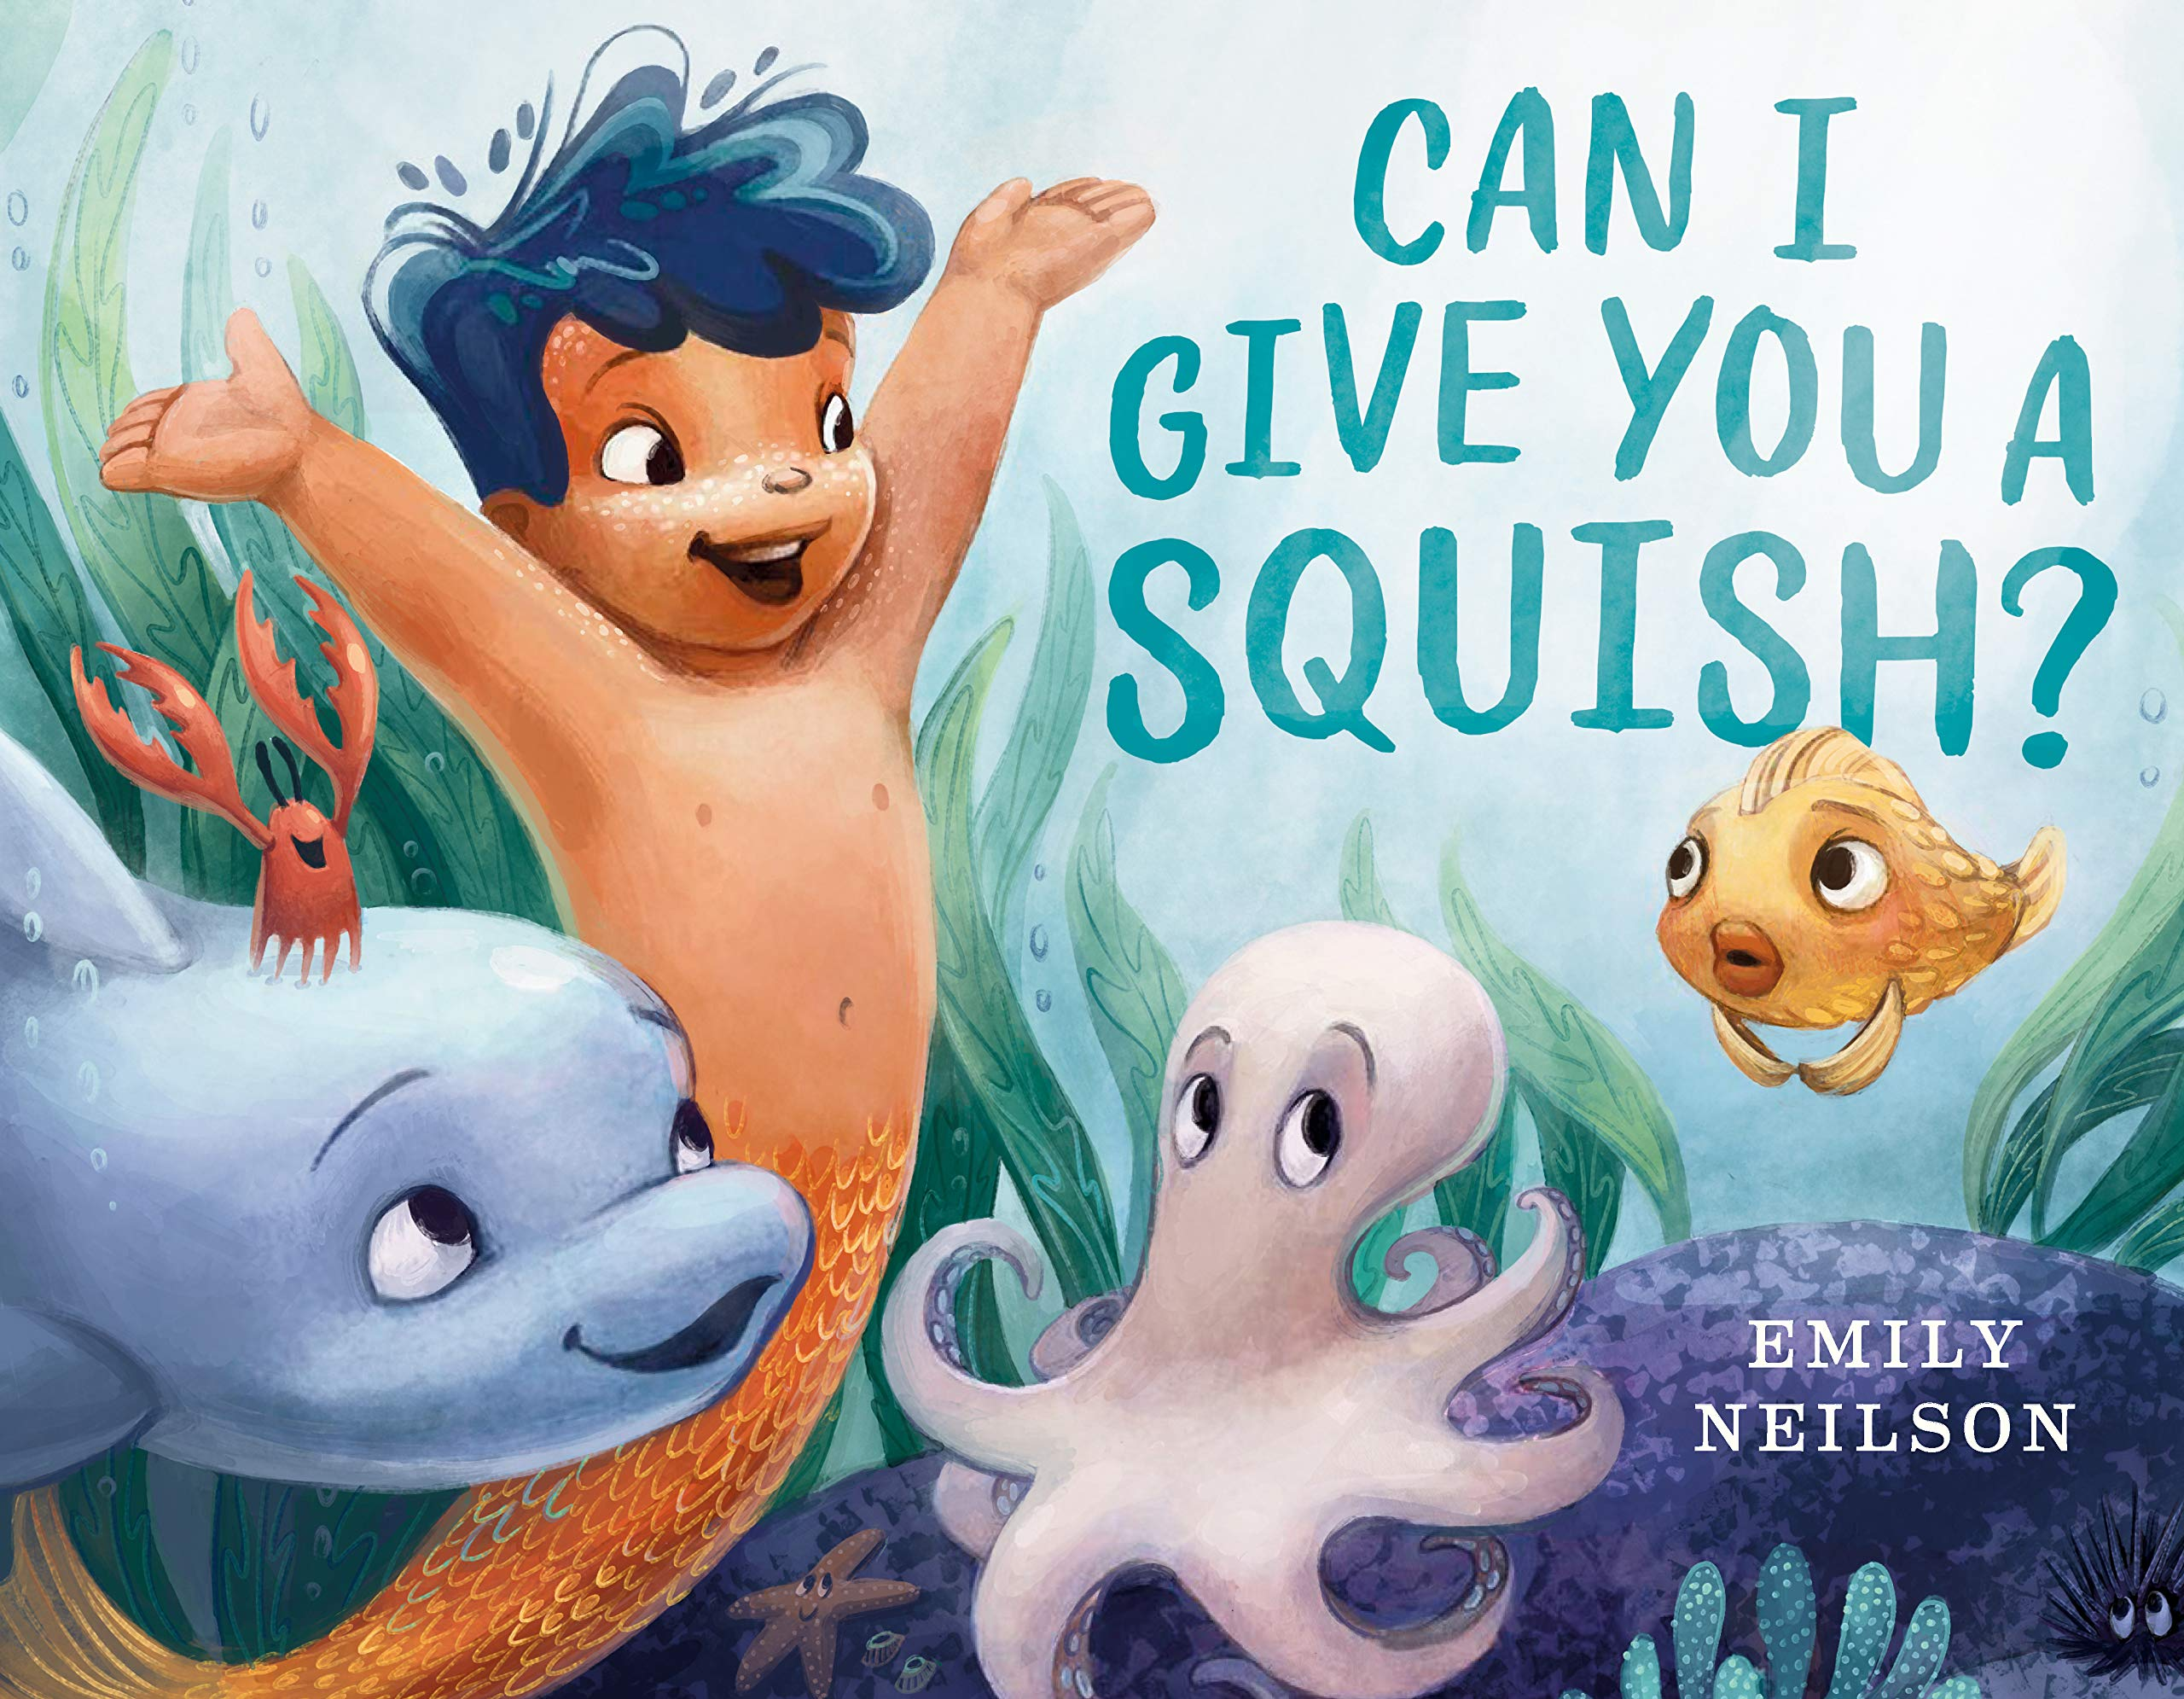 Can I Give You a Squish?: Neilson, Emily: 9781984814777: Amazon.com: Books